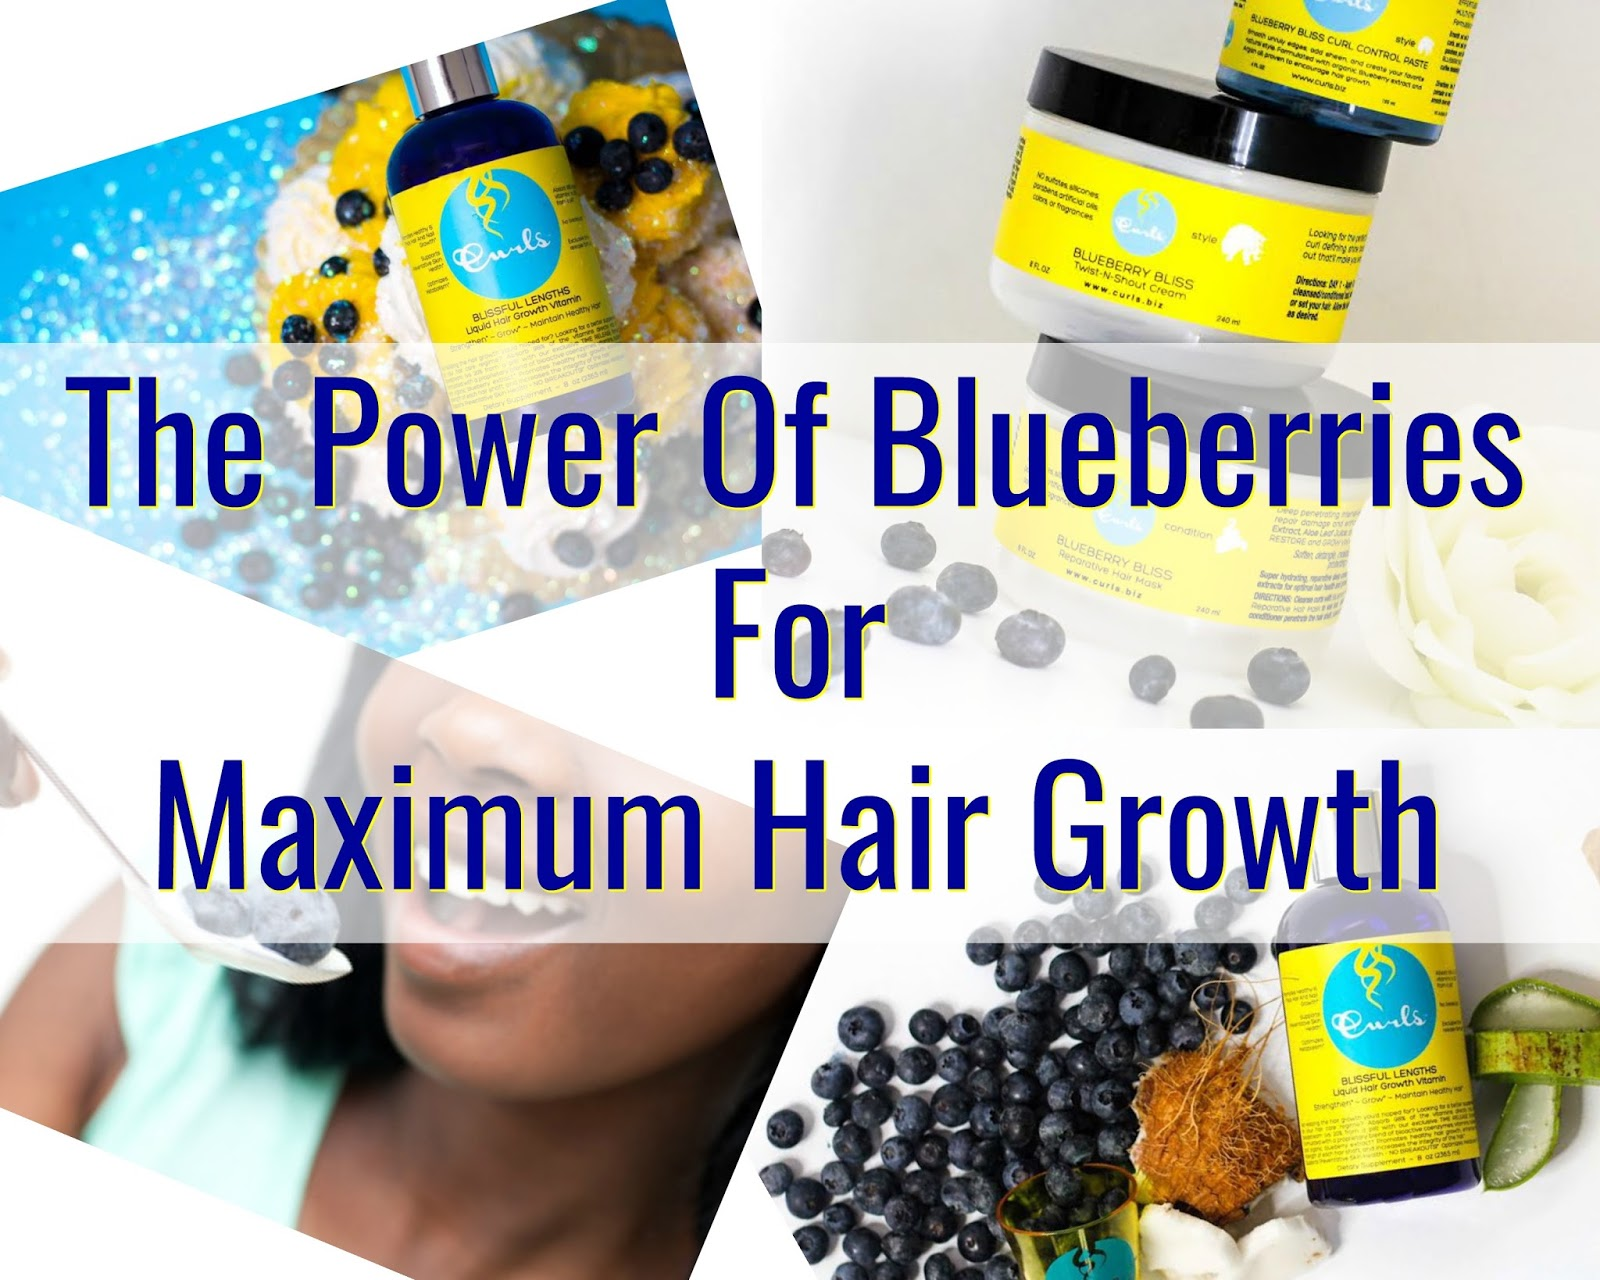 Click here to buy Curls Blueberry Bliss Hair Wash, Leave-in Conditioner & Curl Control Paste Combo to get the best of blueberries for your hair!